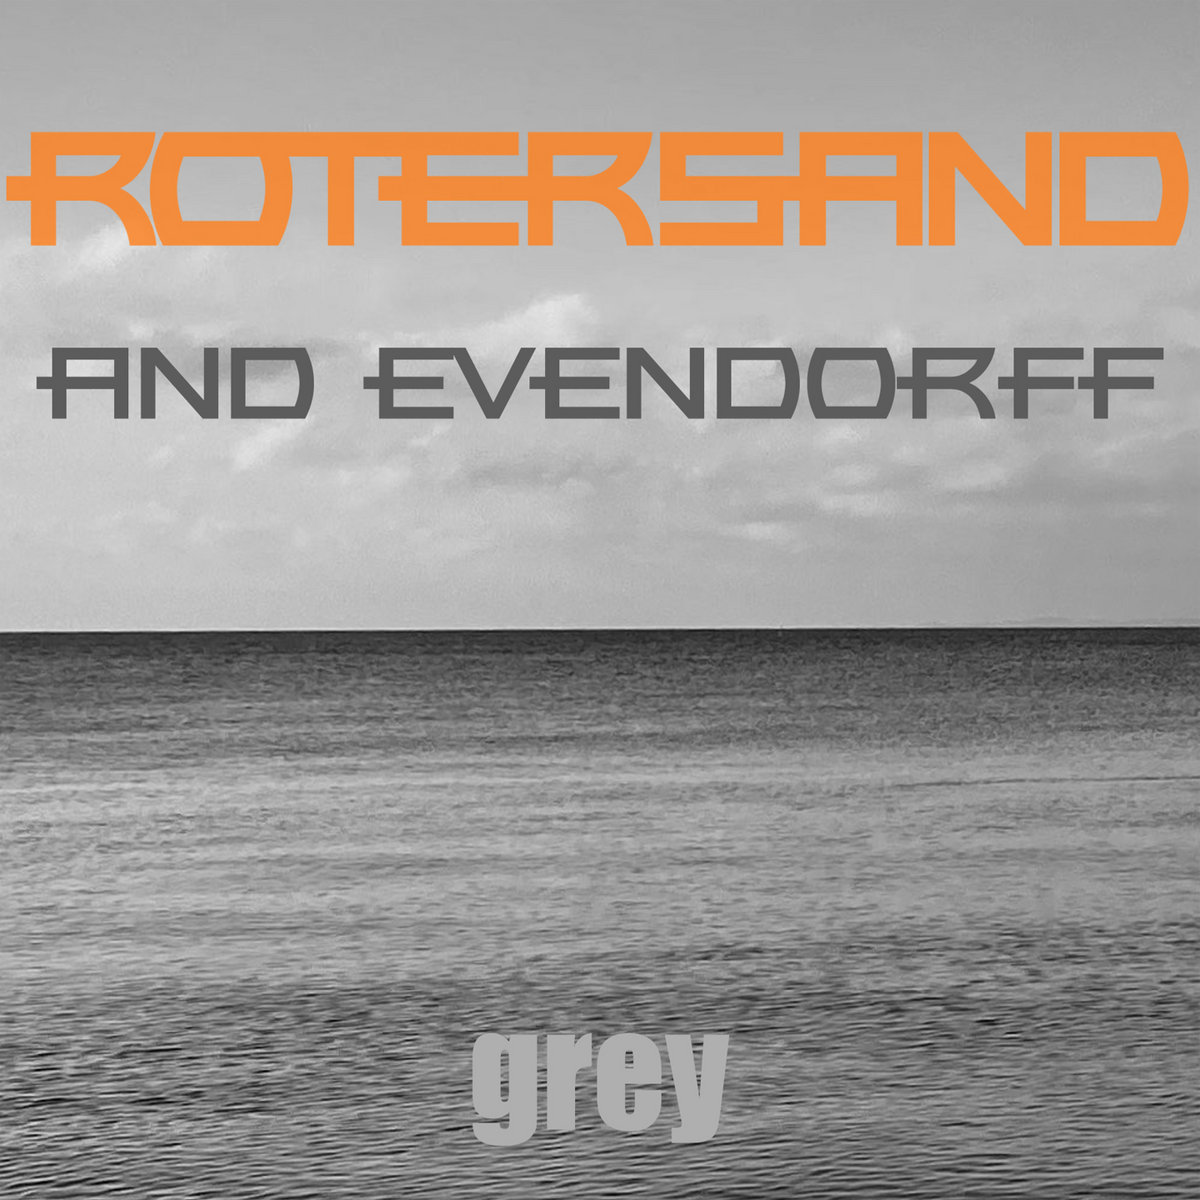 Rotersand and Evendorff - grey - Rotersand and Evendorff - grey